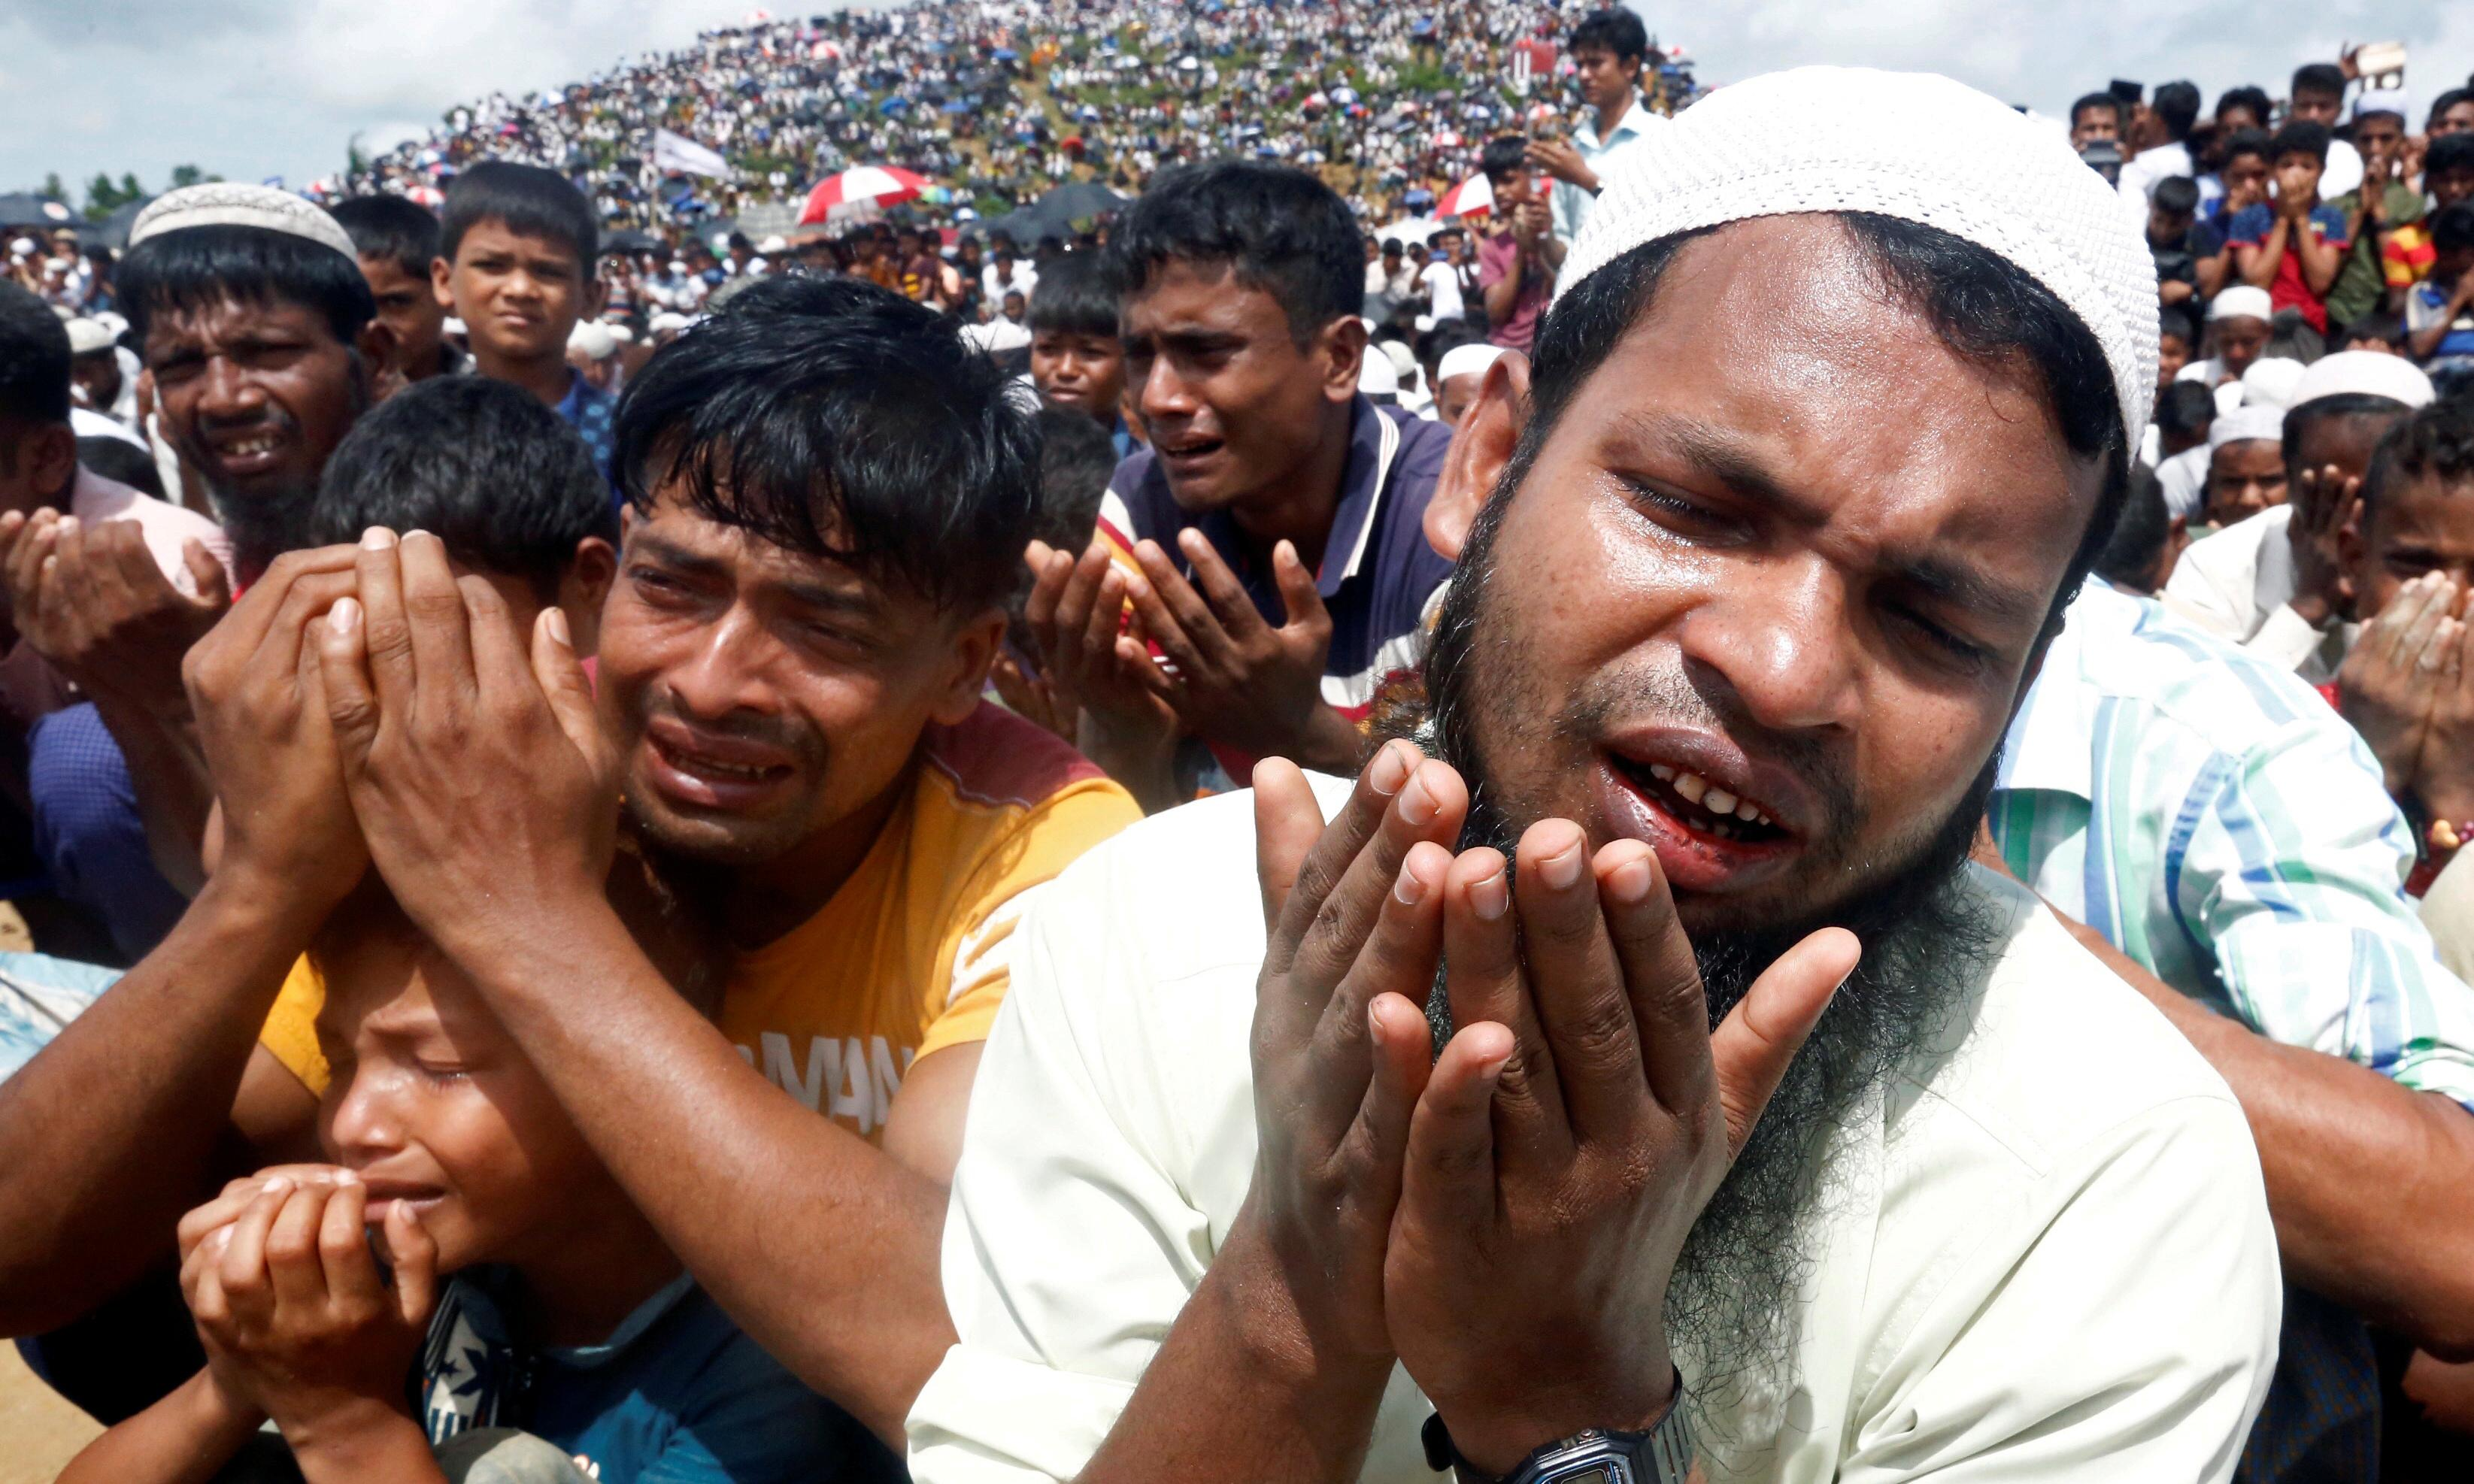 UN's top court orders Myanmar to protect Rohingya from genocide